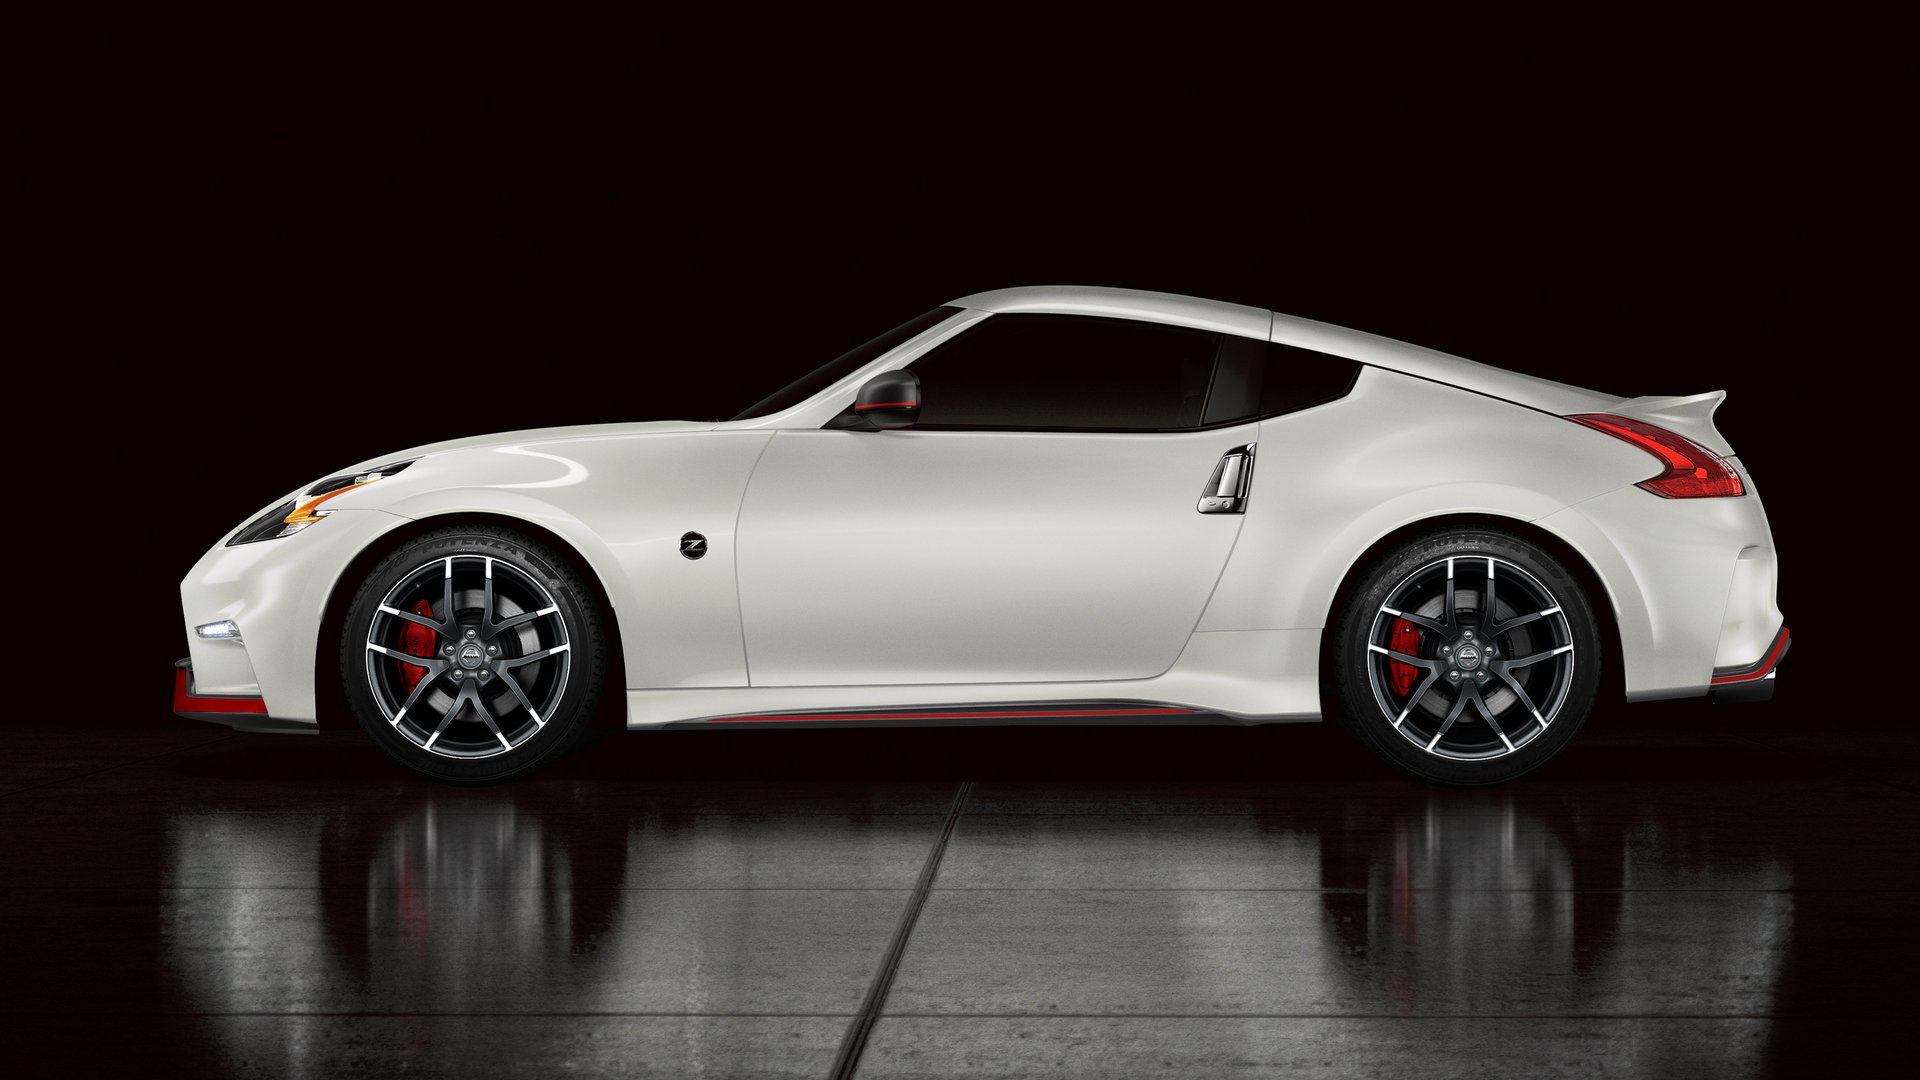 Awesome Nissan 370Z Free Wallpaper ID:53435 For Hd 1920x1080 Computer